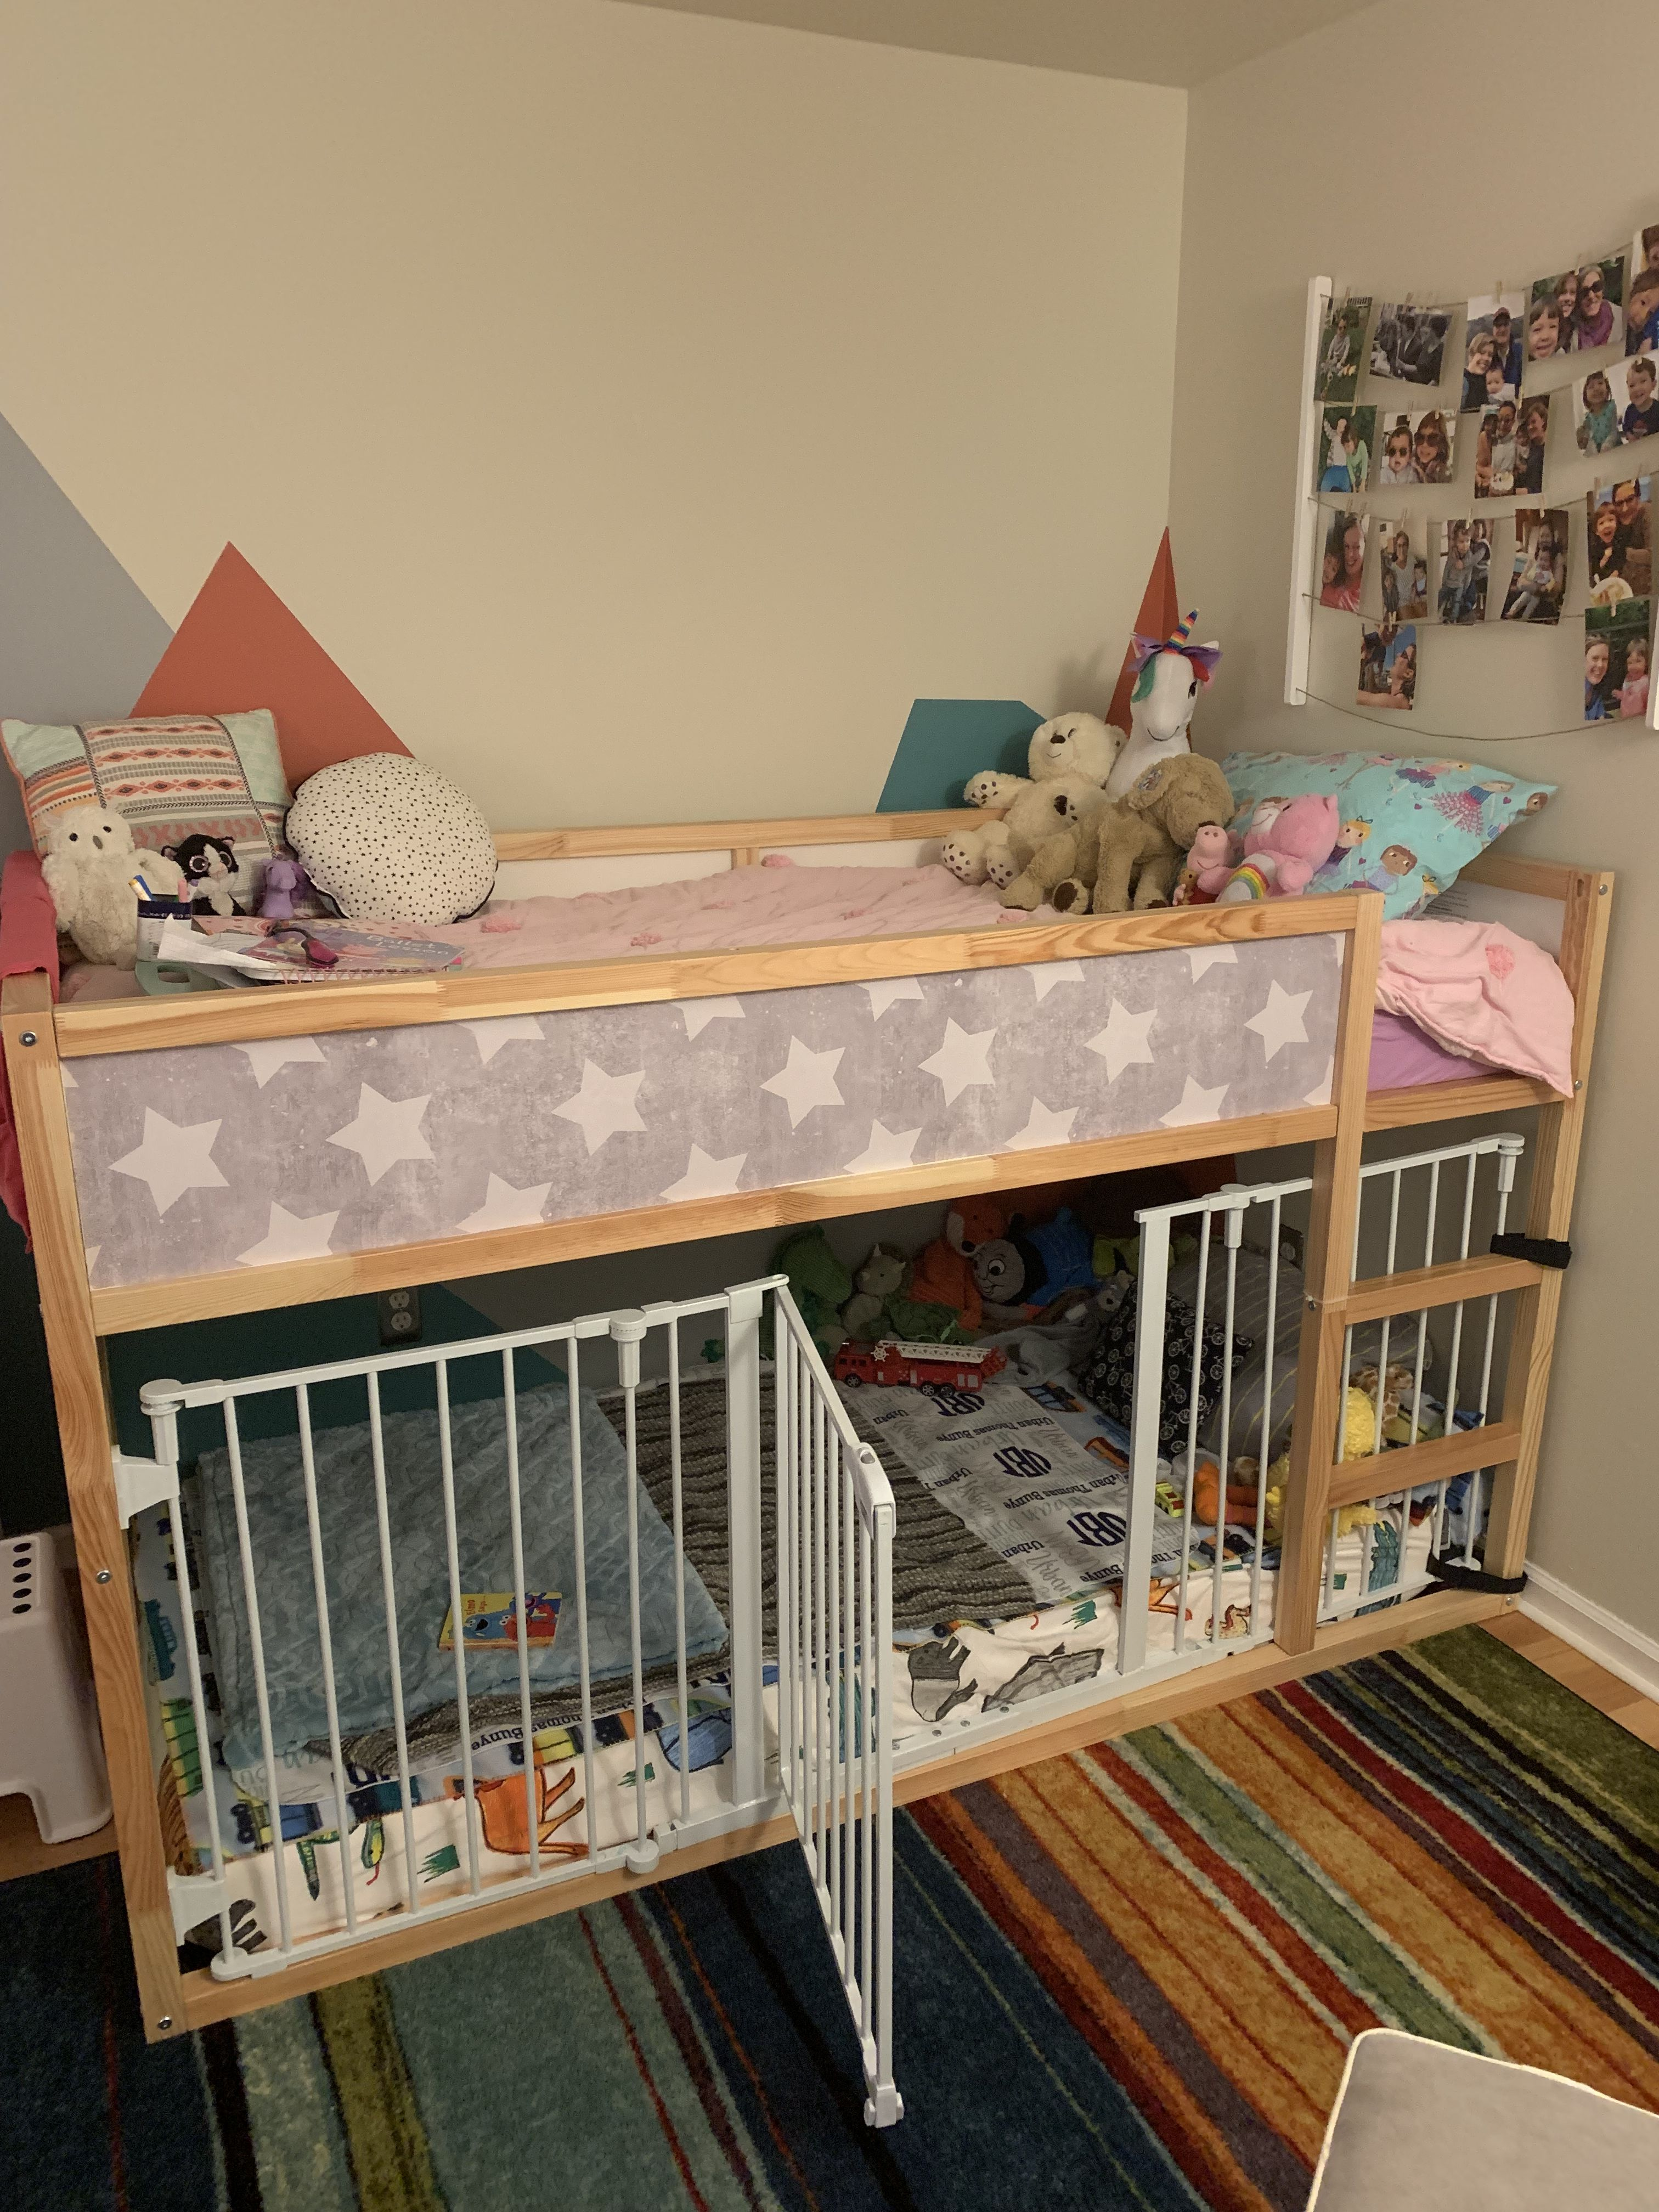 Giant Toddler Crib Bottom Bunk We Created This Giant Crib On The